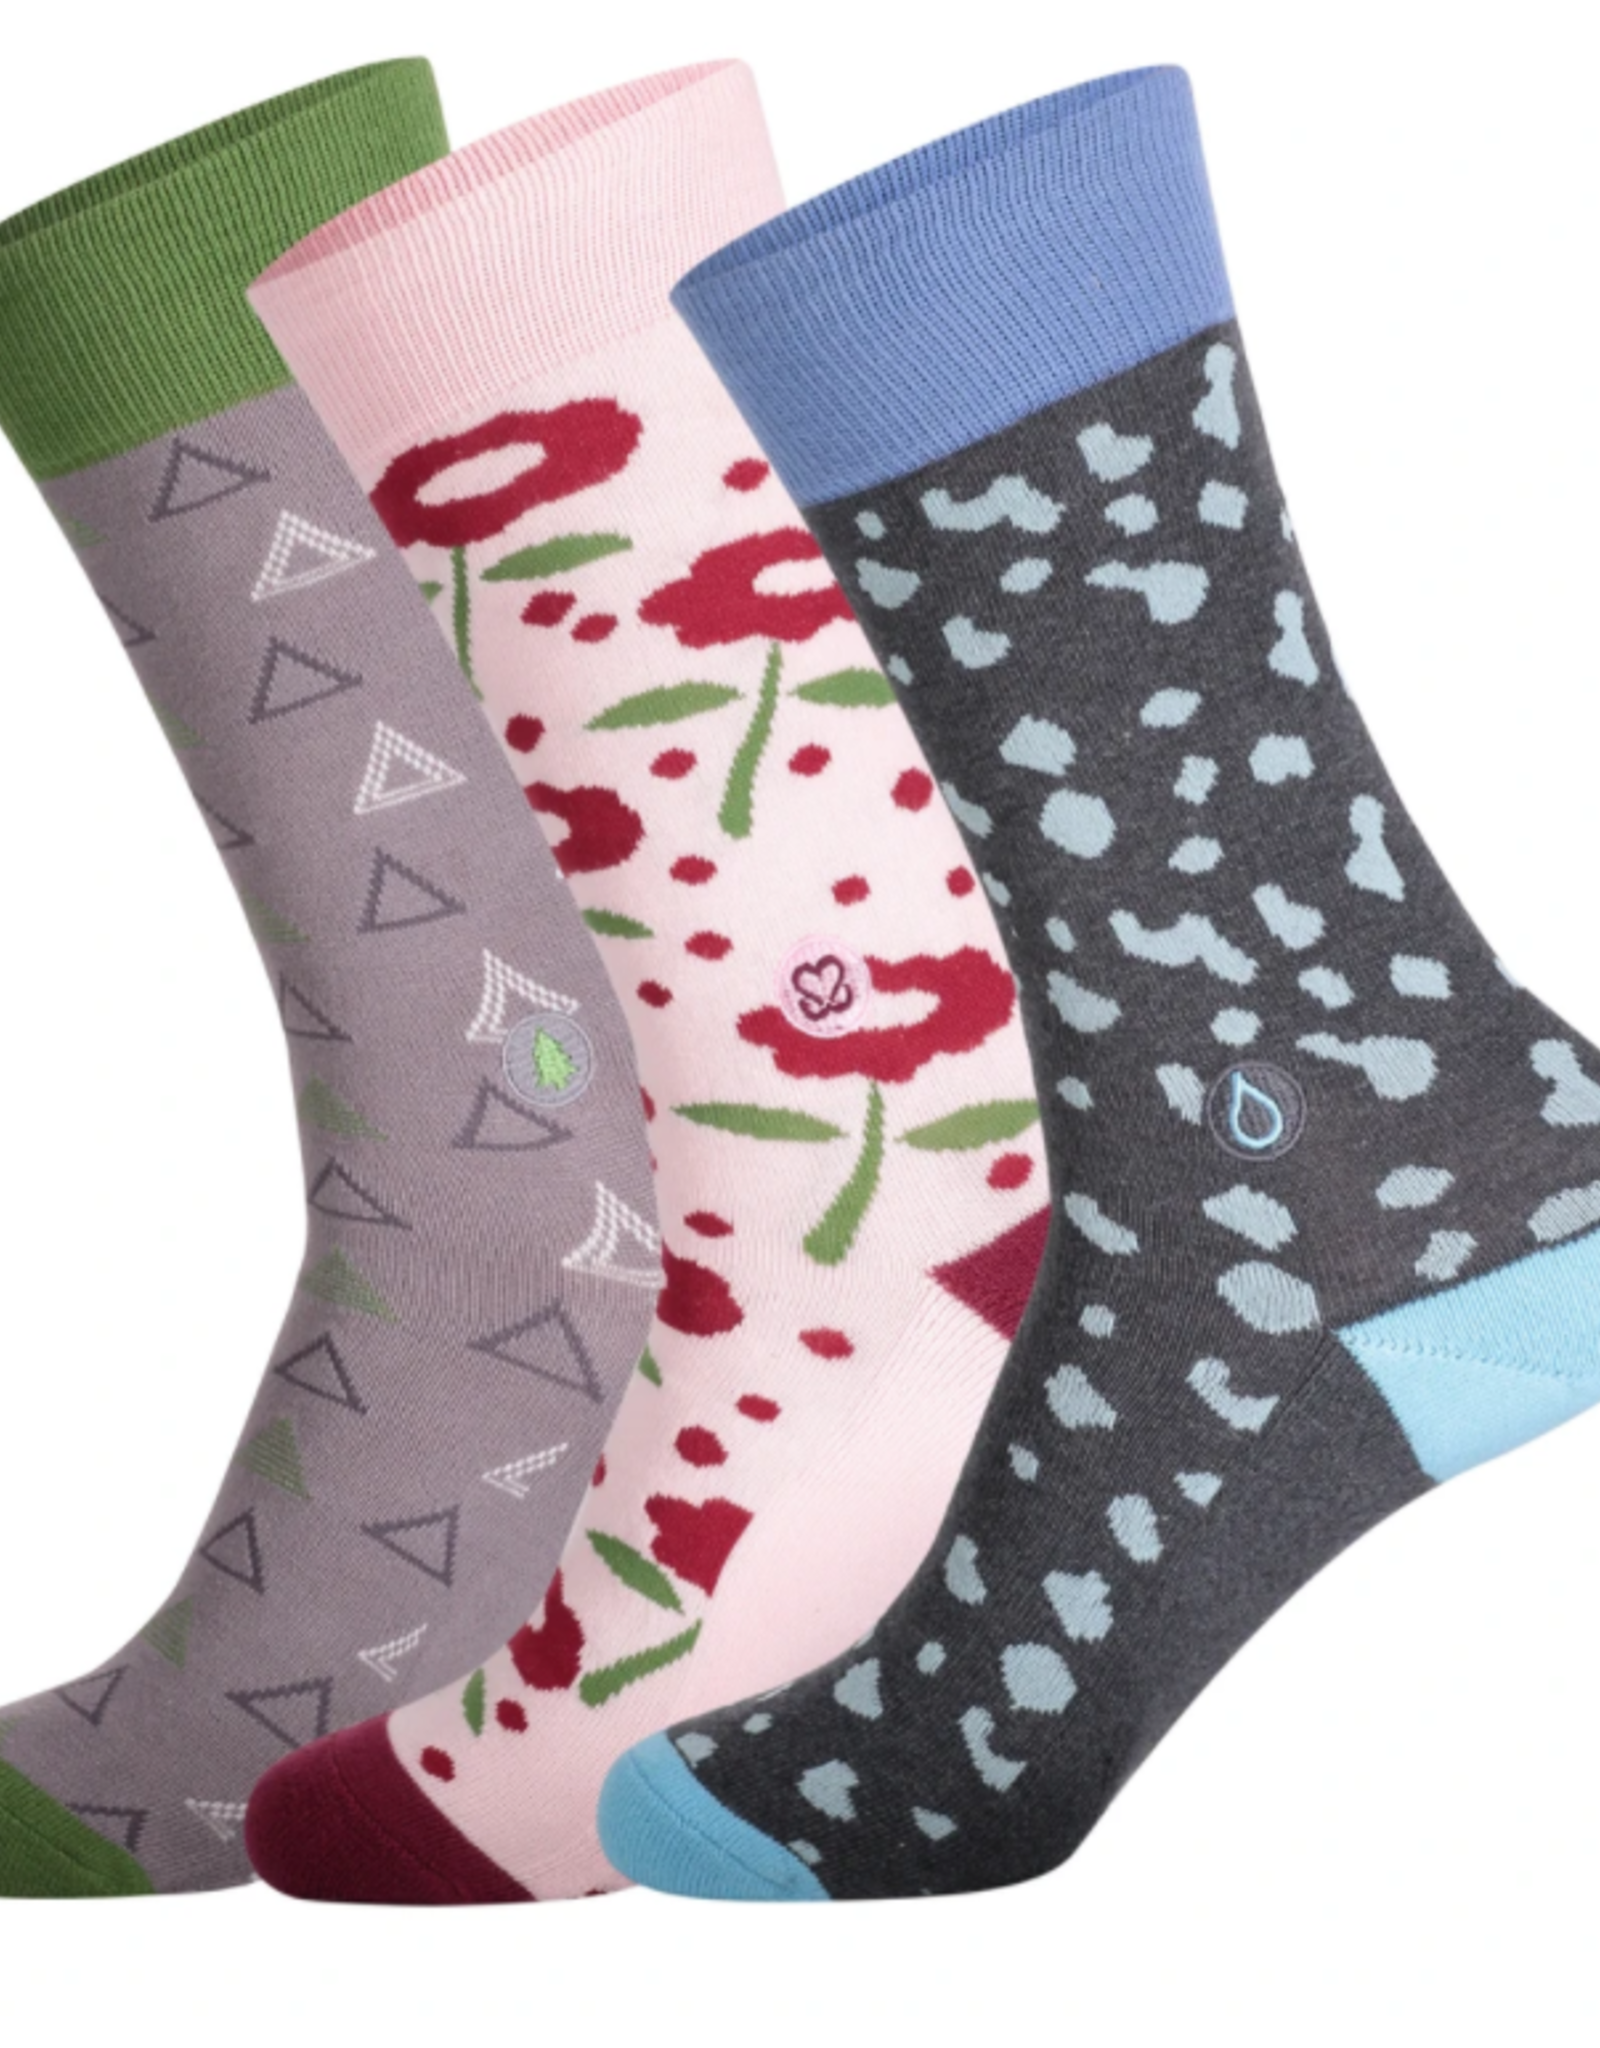 India, Conscious Socks Box Set  Socks that Fight for Her Small